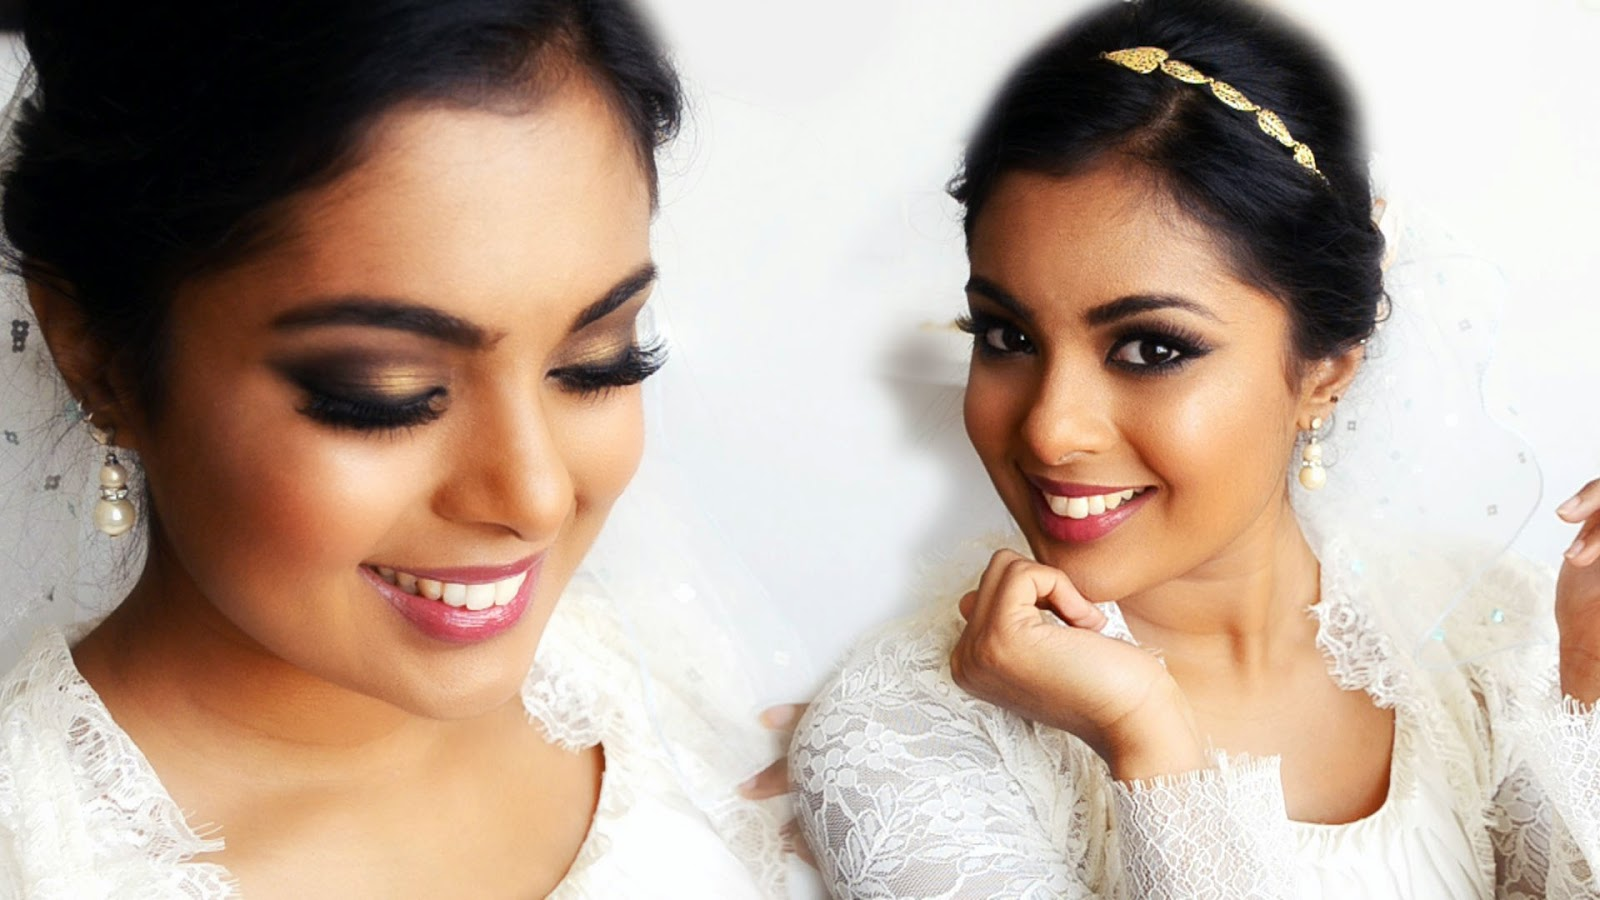 How To Do Bridal Makeup By Own : The itch to write: How to do your own wedding makeup!